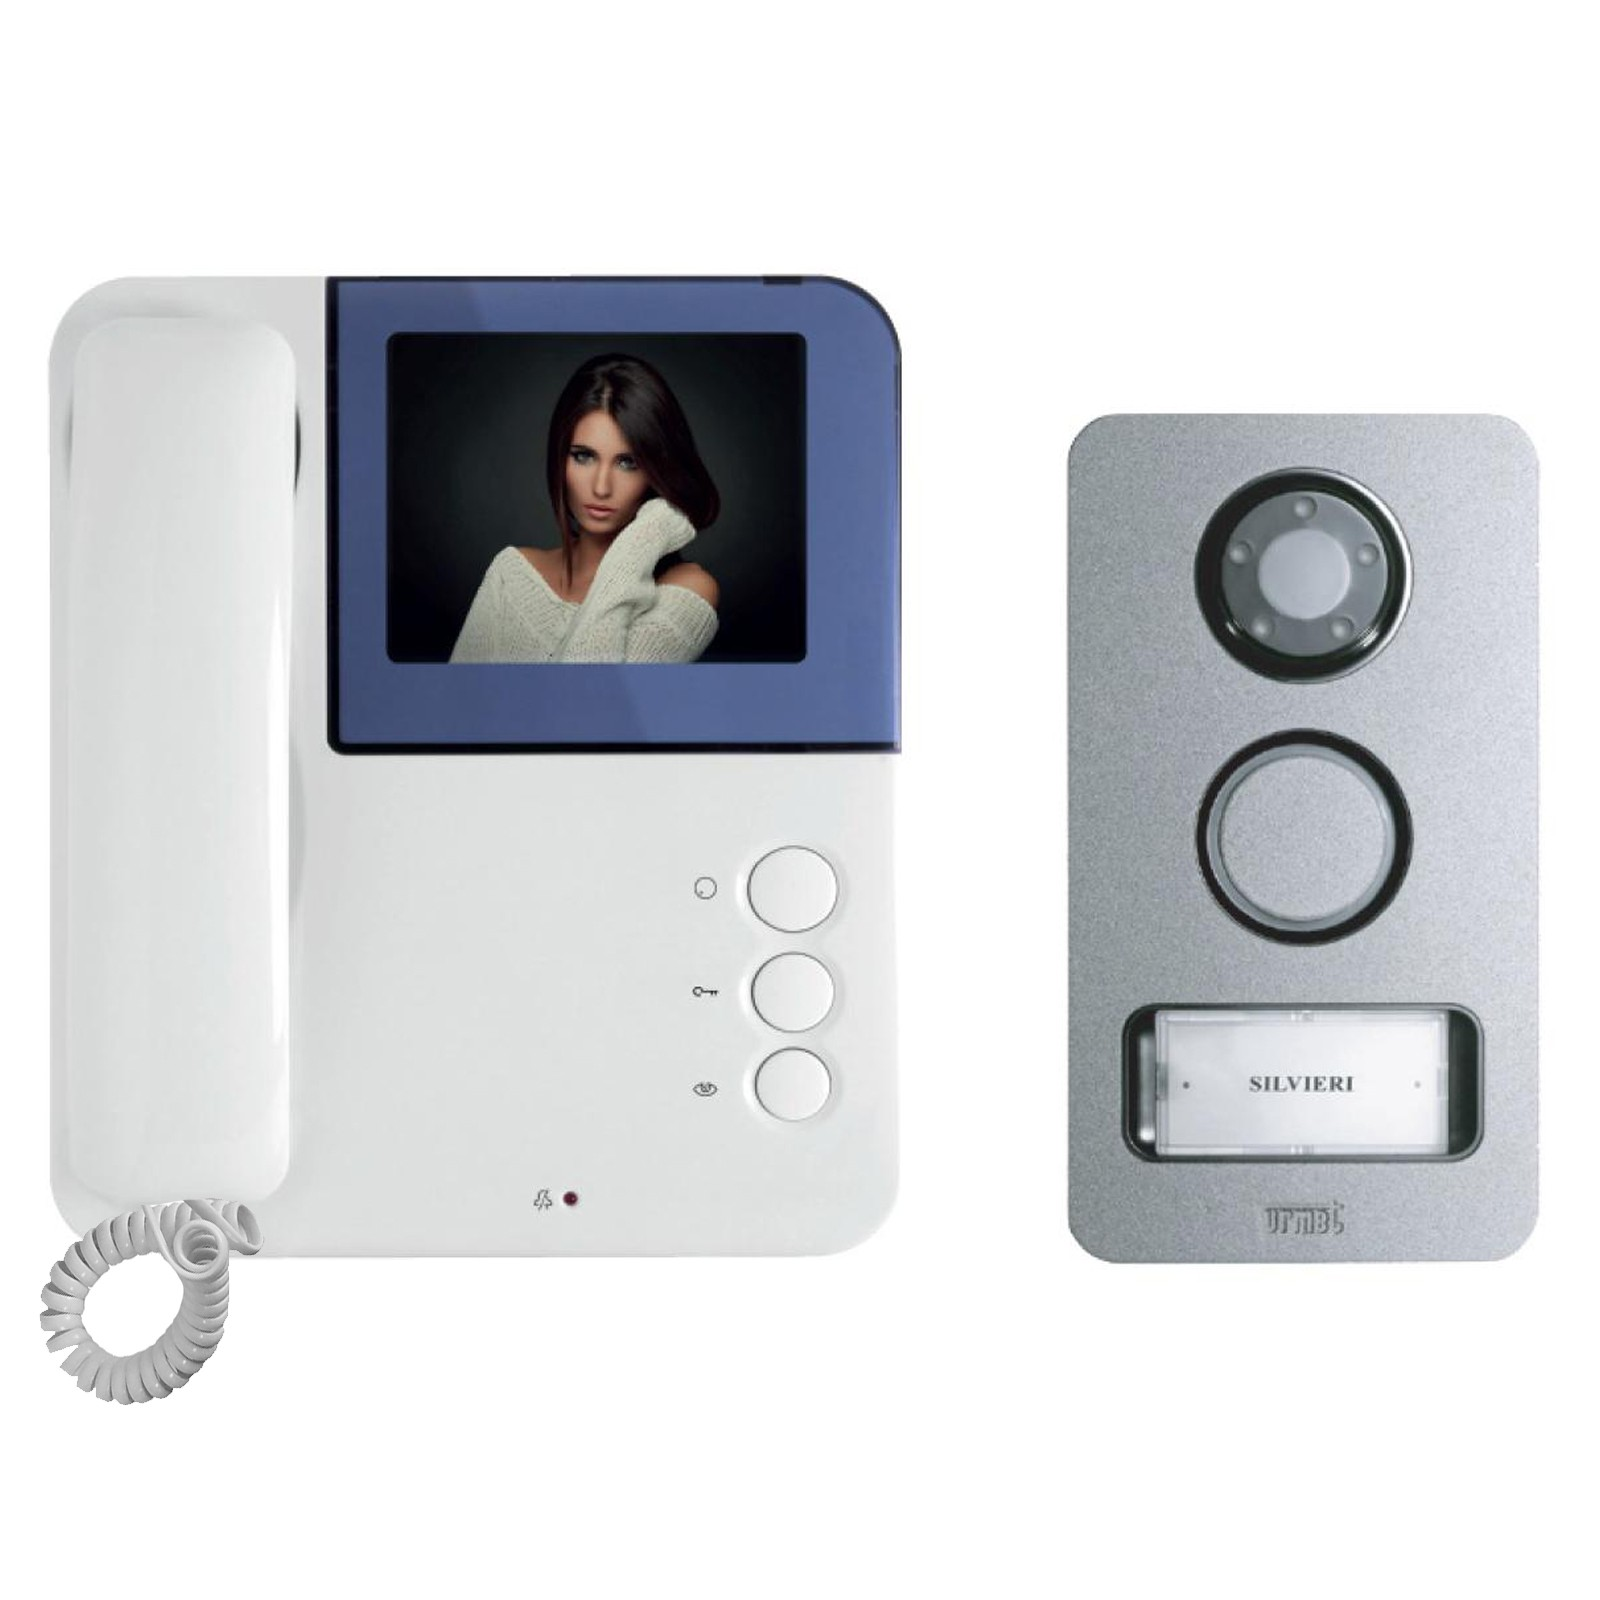 kit videocitofono urmet simply mikra video monitor colori